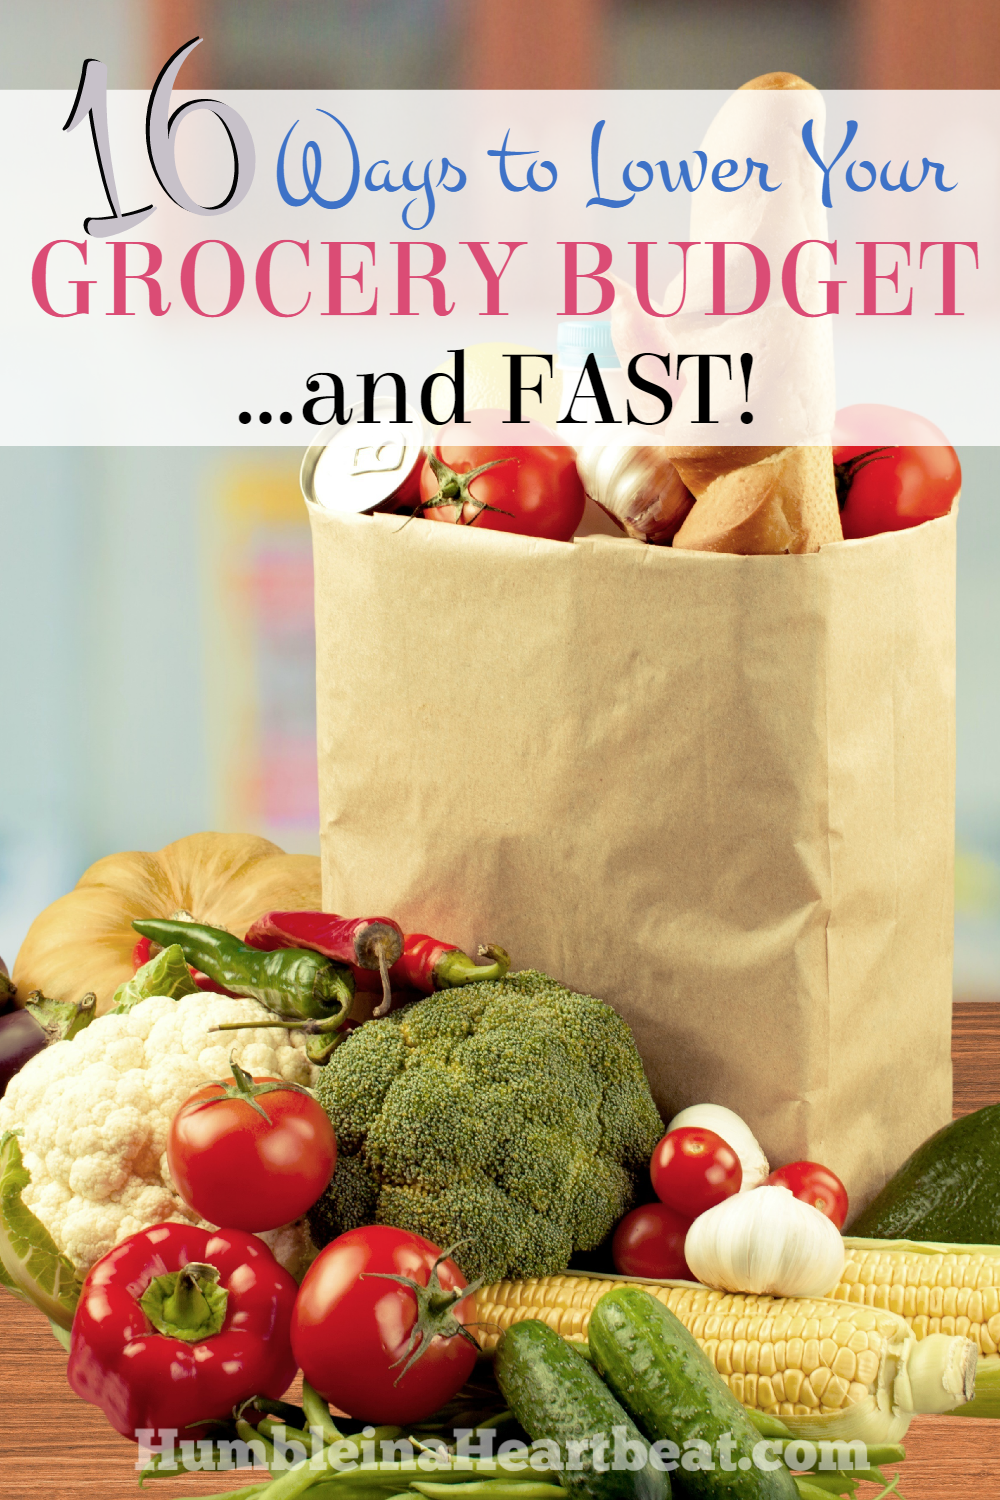 If you find yourself in a tight spot and need to lower the amount of money you spend on food, these 16 ways to save on groceries can help you out right now!